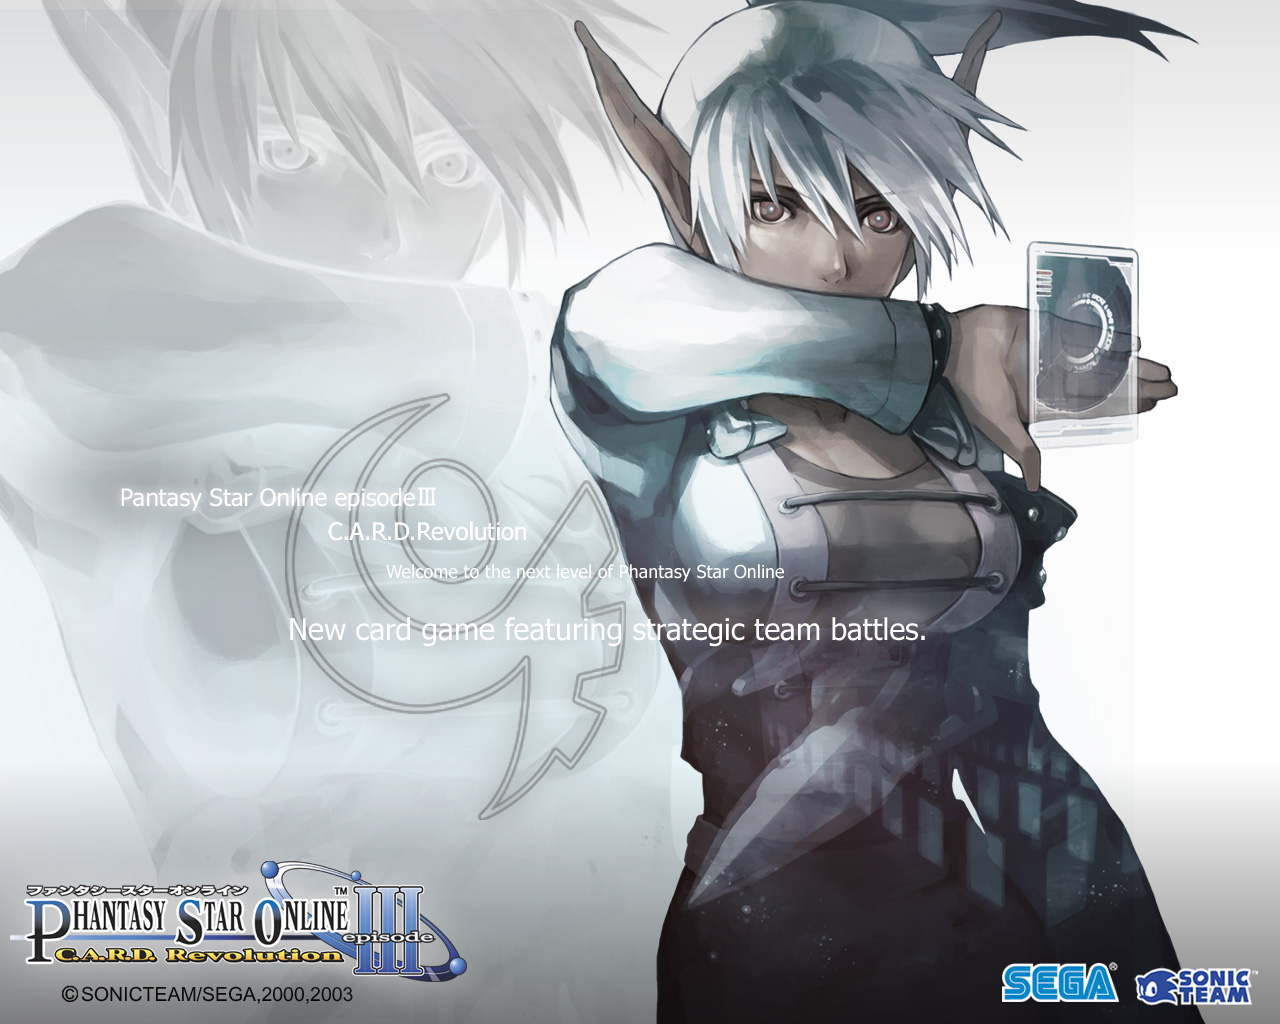 Phantasy Star Online Wallpaper: Who Wants To Vote For The Hottest Pixelated Beauty In